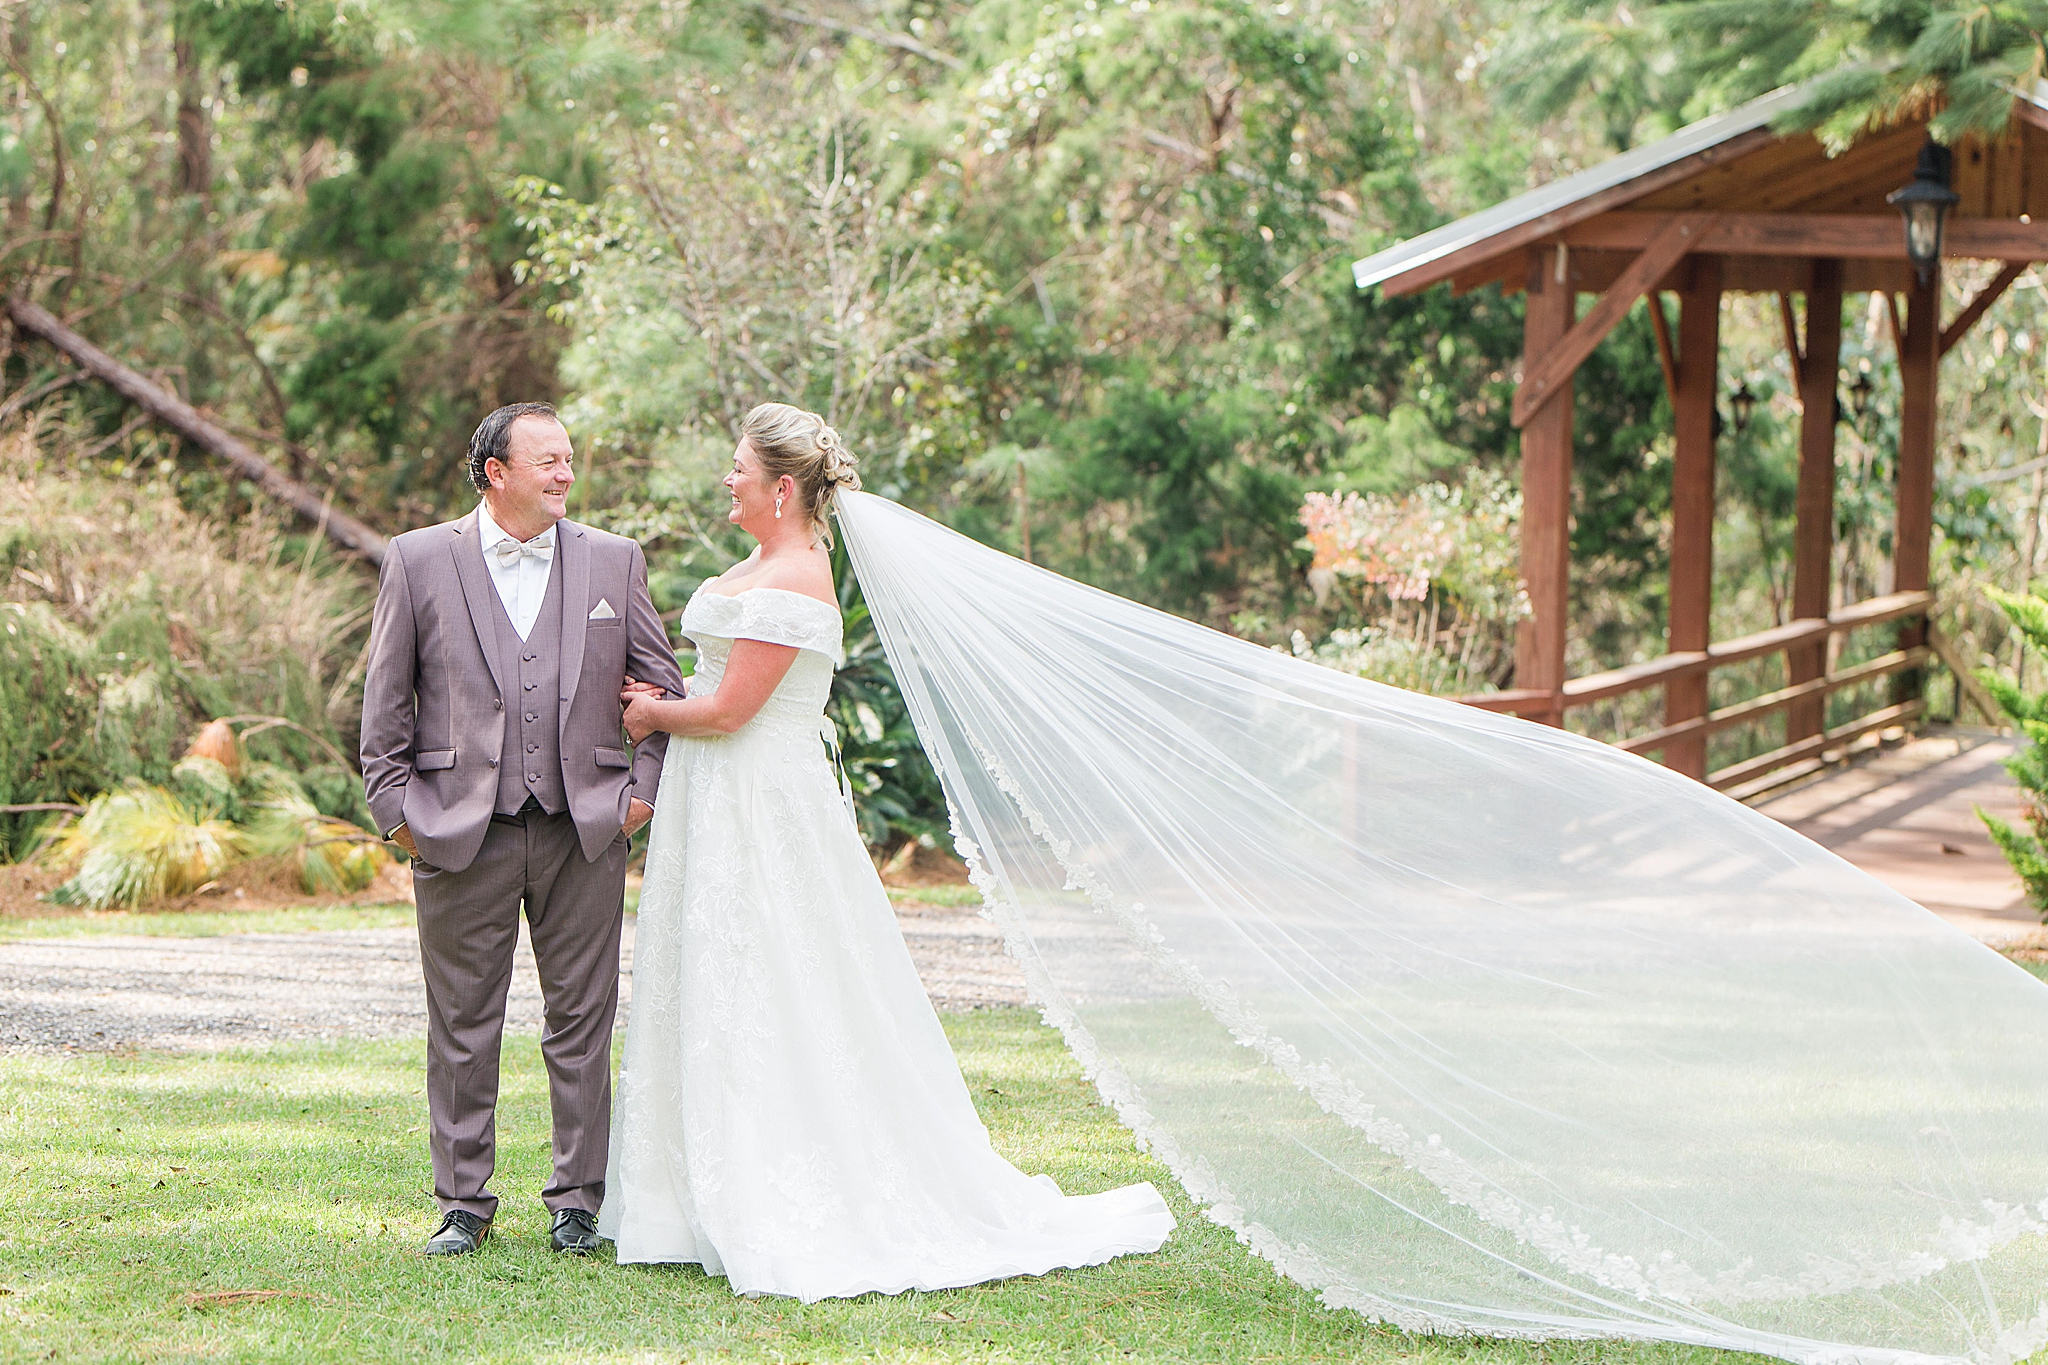 bride and groom laugh with bride's veil floating behind her